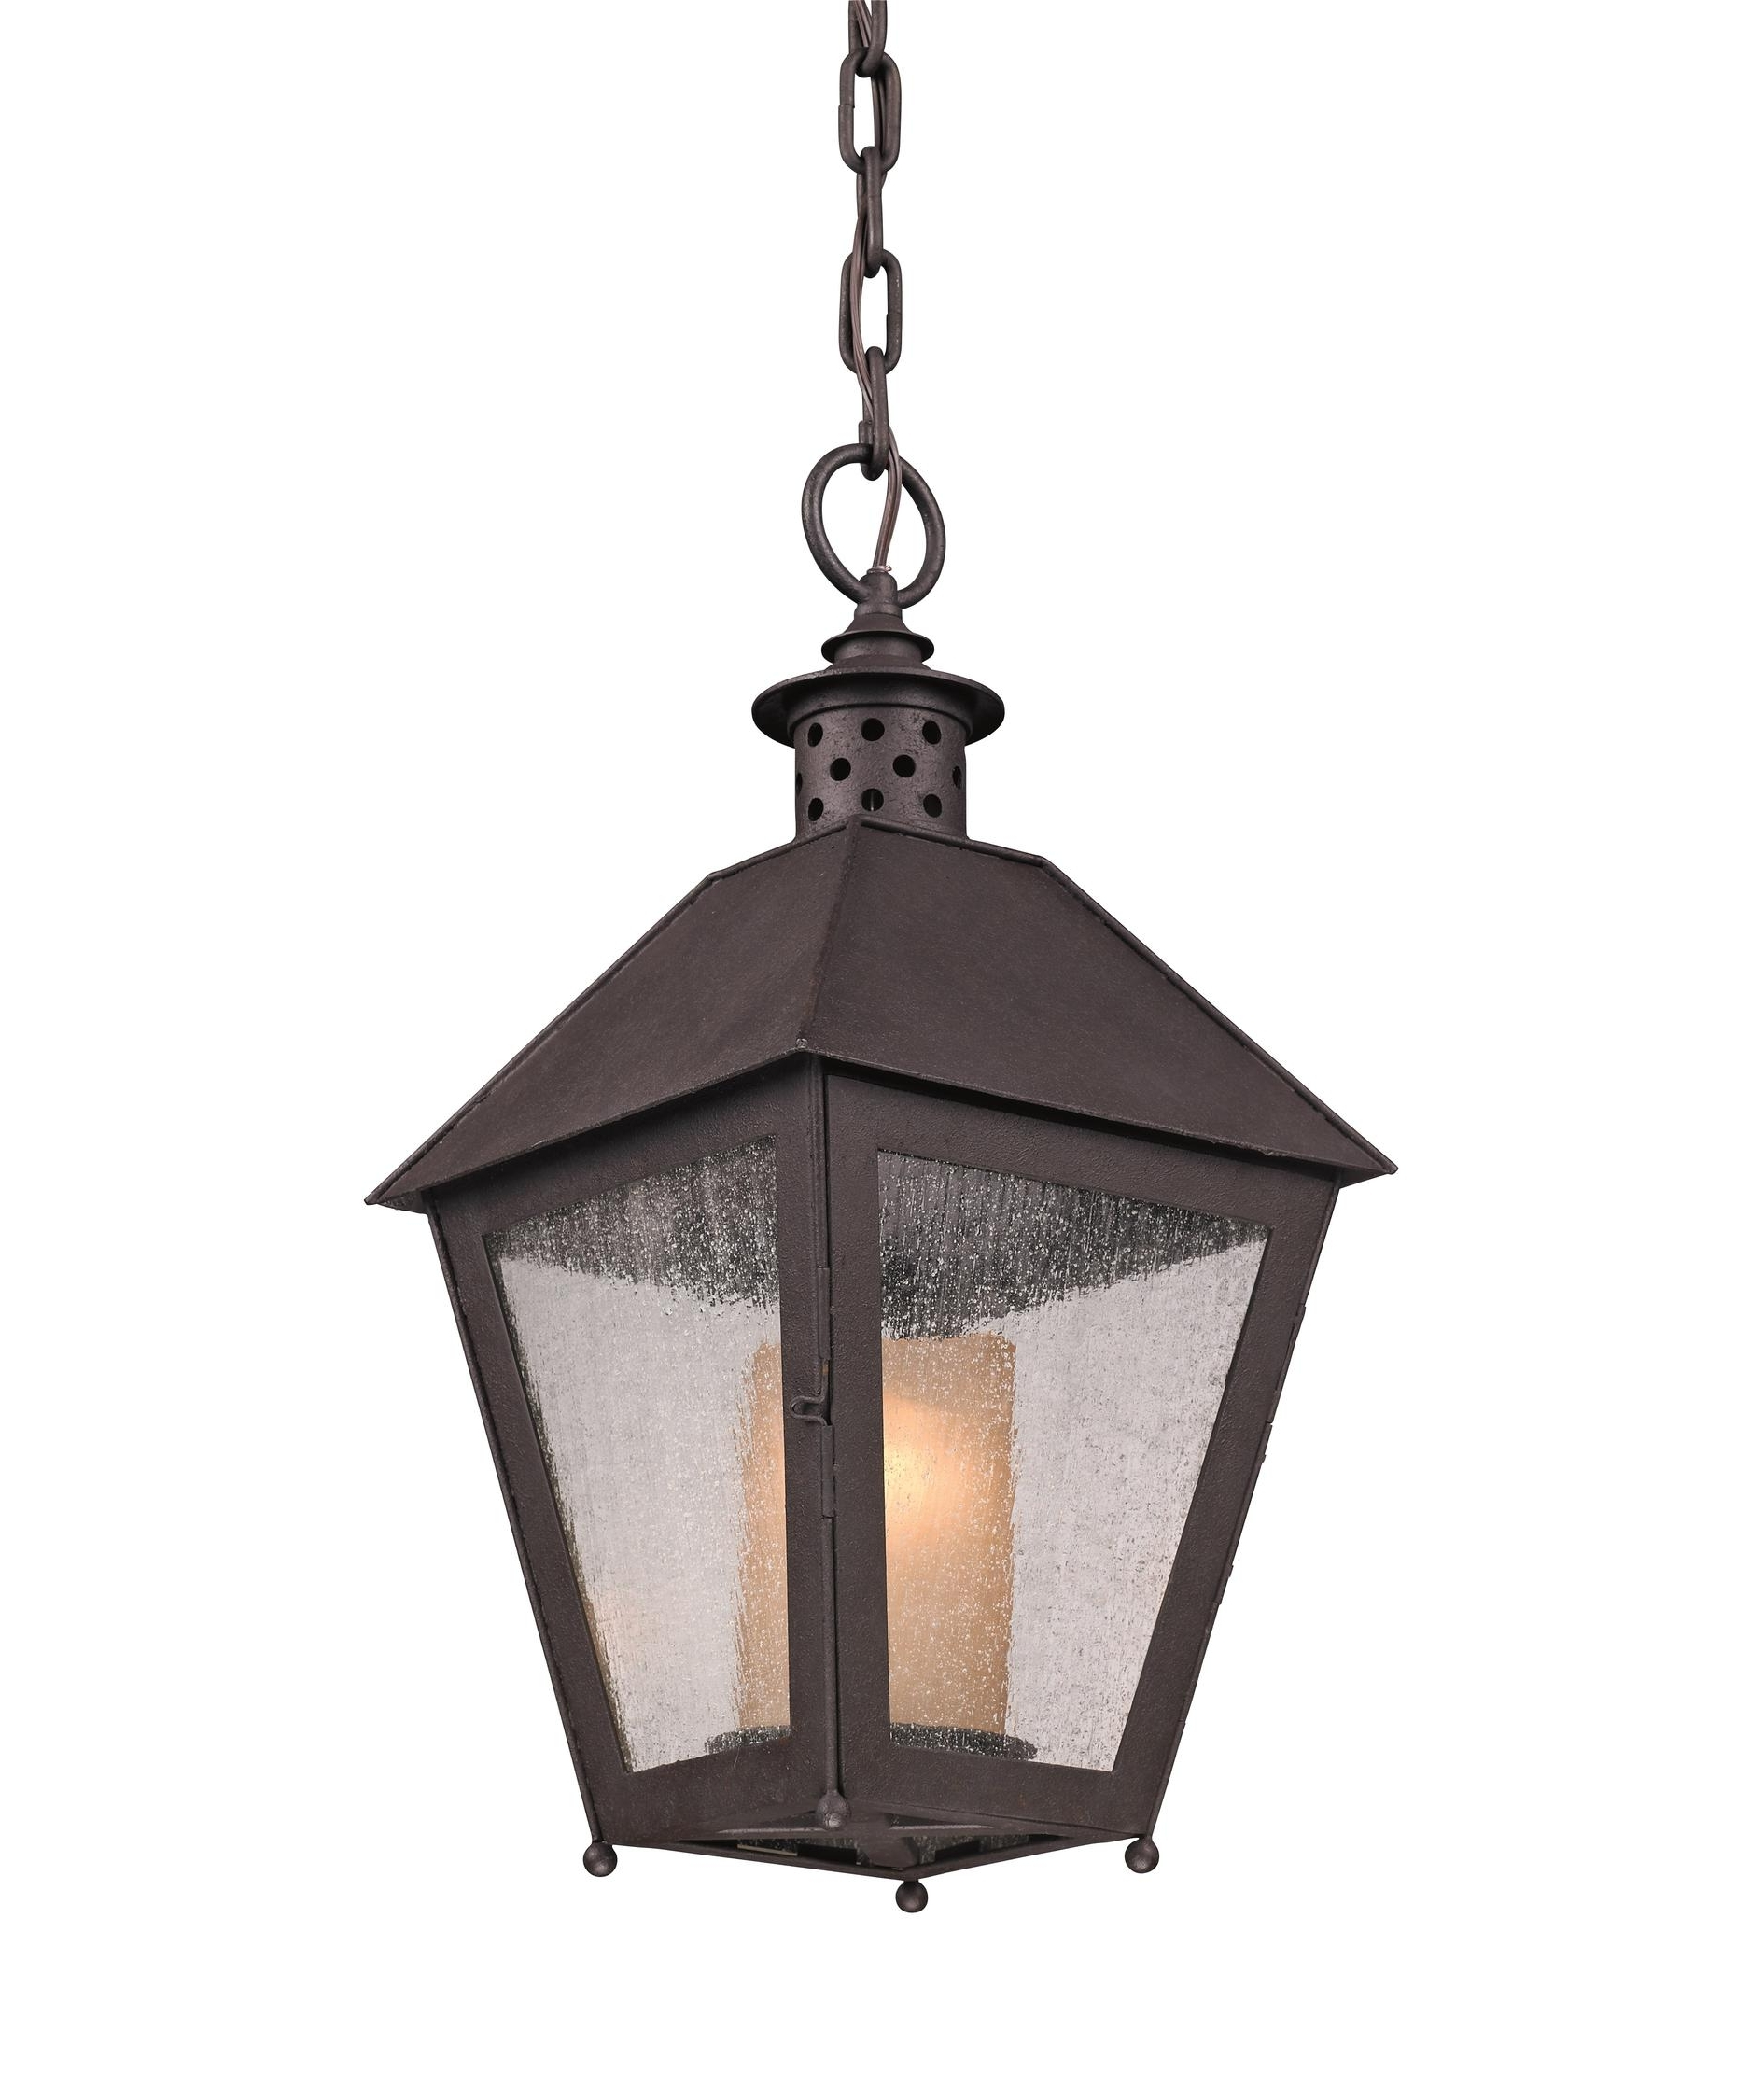 Troy Lighting F3297 Sagamore 10 Inch Wide 1 Light Outdoor Hanging Regarding Well Liked Outdoor Hanging Lanterns (View 9 of 20)